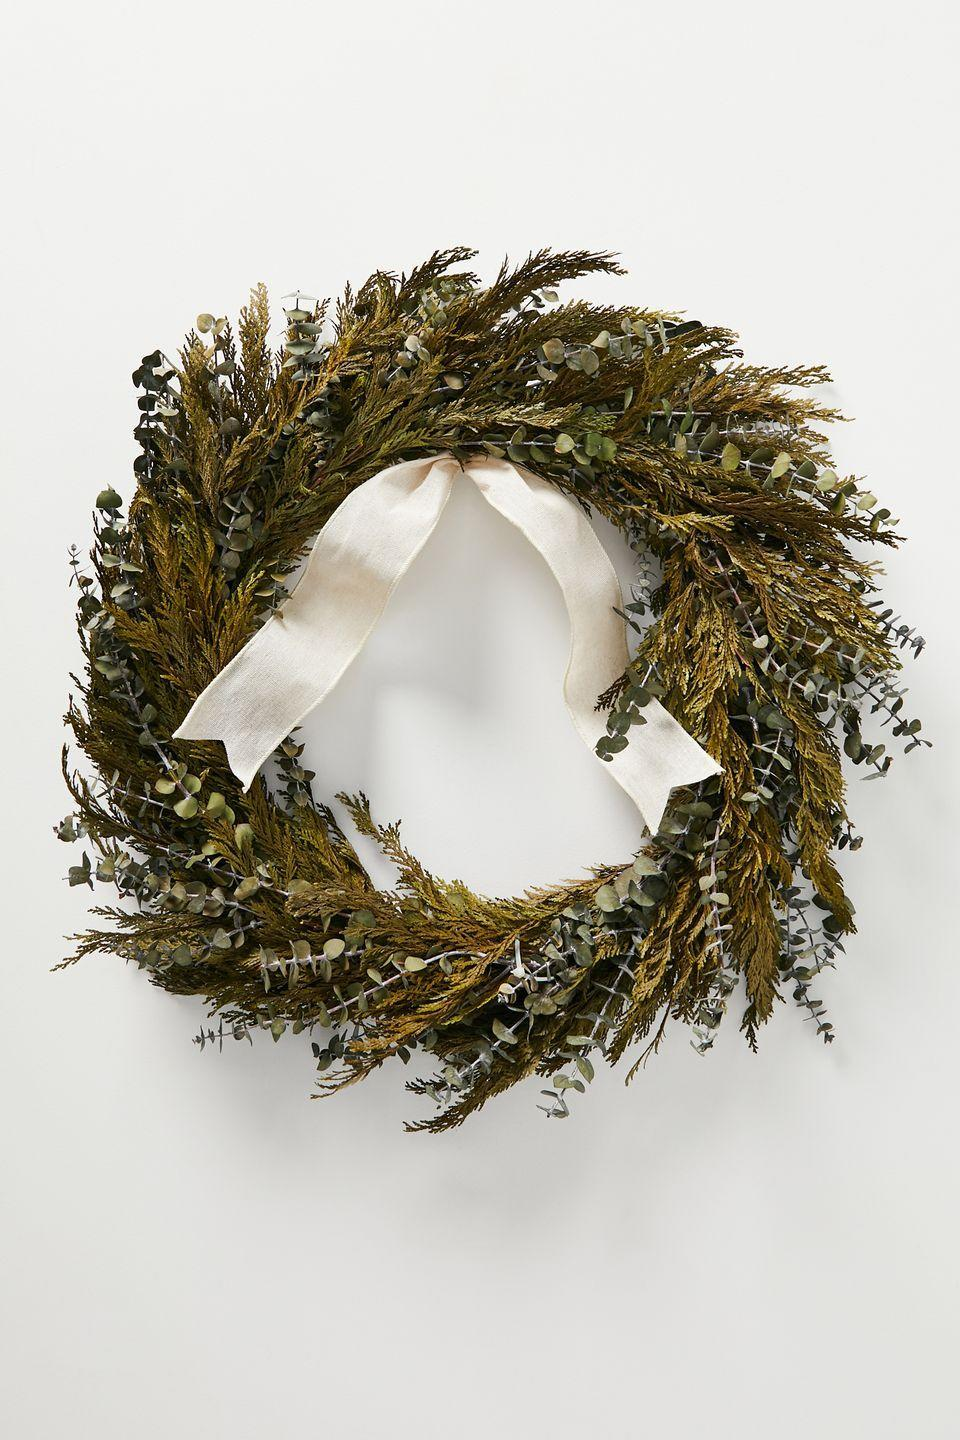 "<p>Putting up your wreath earlier than normal, means looking for one that can last for more than a month. This dried eucalyptus wreath is practical as well as simple and stylish. Ideal for cheering up an elongated festive period. £68, <a href=""https://www.anthropologie.com/en-gb/shop/eucalytpus-dried-wreath?recommendation=dyrectray-SimilarProduct&color=030&type=REGULAR&size=One%20Size&quantity=1"" rel=""nofollow noopener"" target=""_blank"" data-ylk=""slk:anthropologie.com"" class=""link rapid-noclick-resp"">anthropologie.com</a></p>"